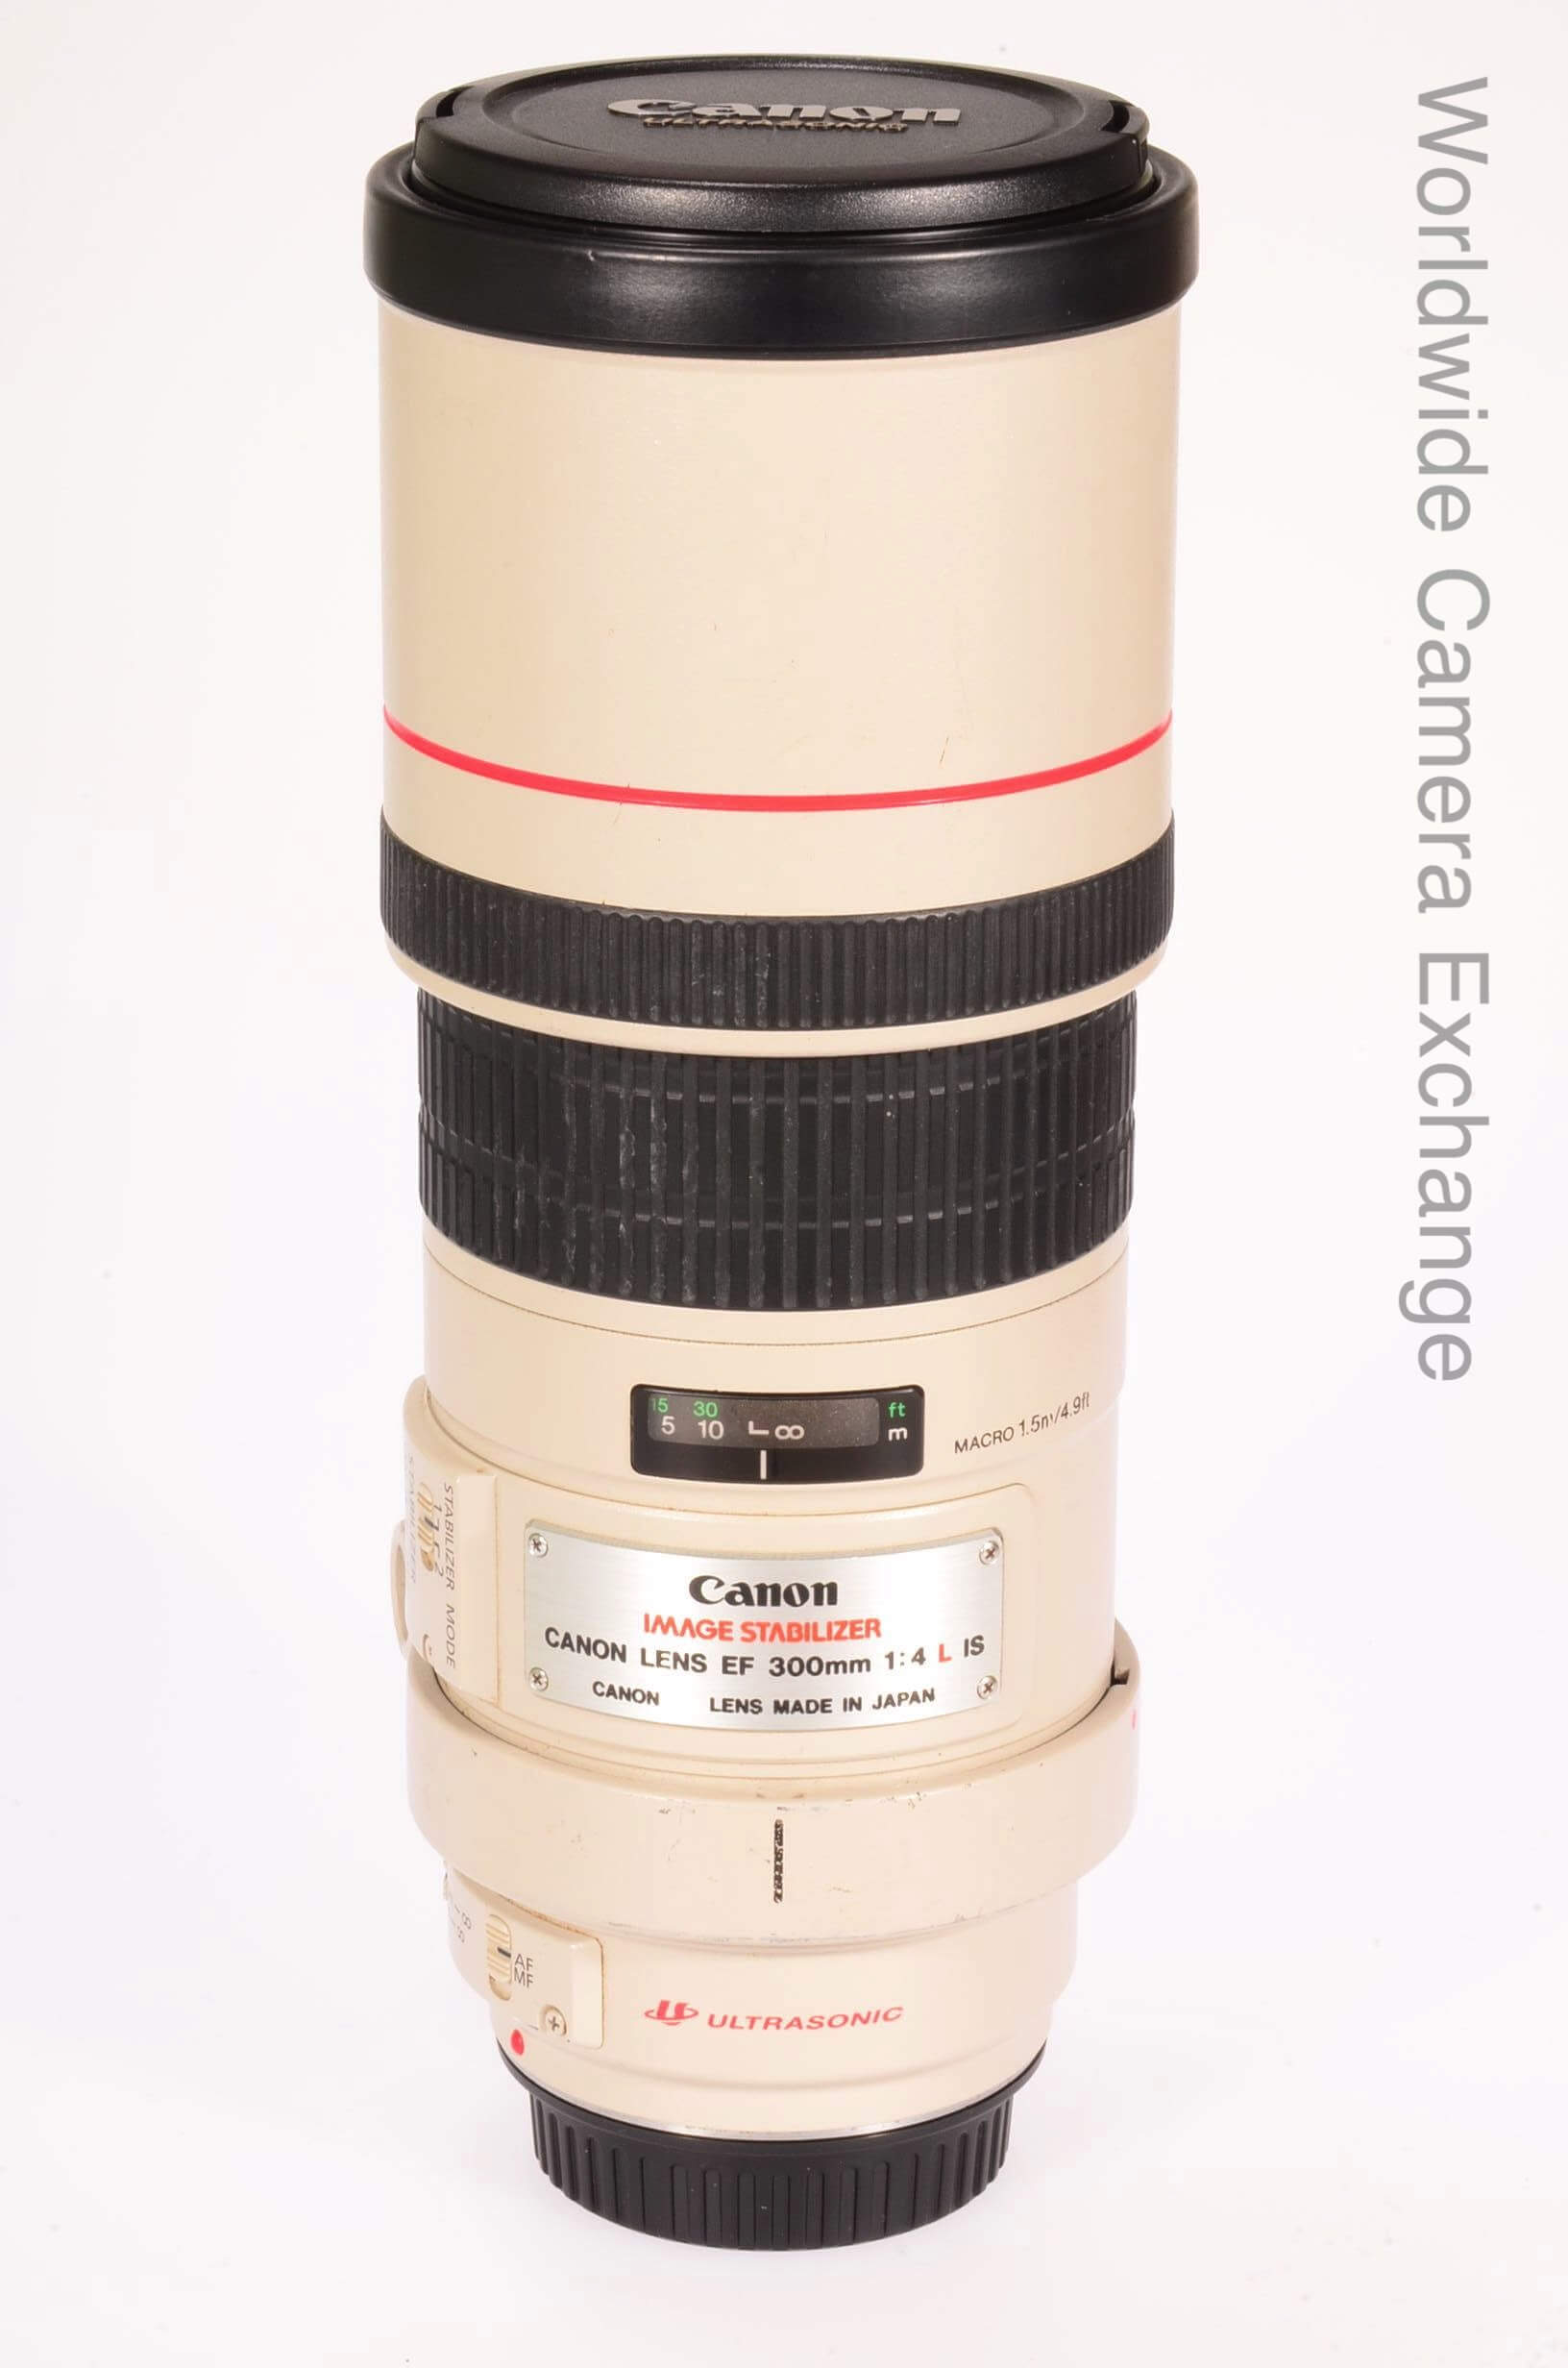 Canon 300mm f4 L IS USM